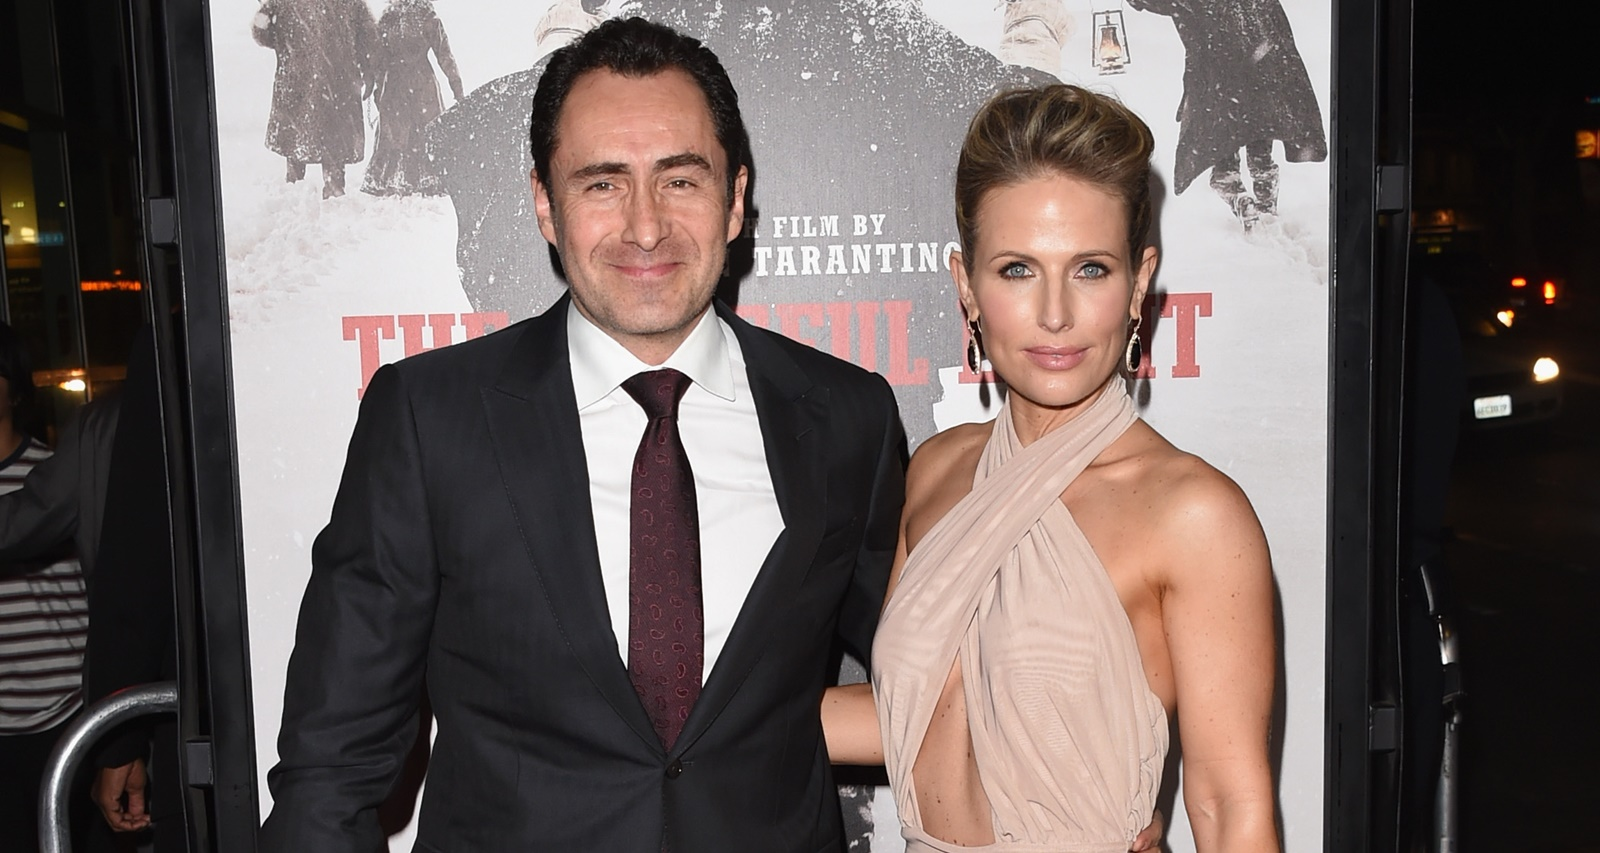 Stefanie Sherk Wiki, Demián Bichir Wife, Parents, Education, Death, Facts To Know